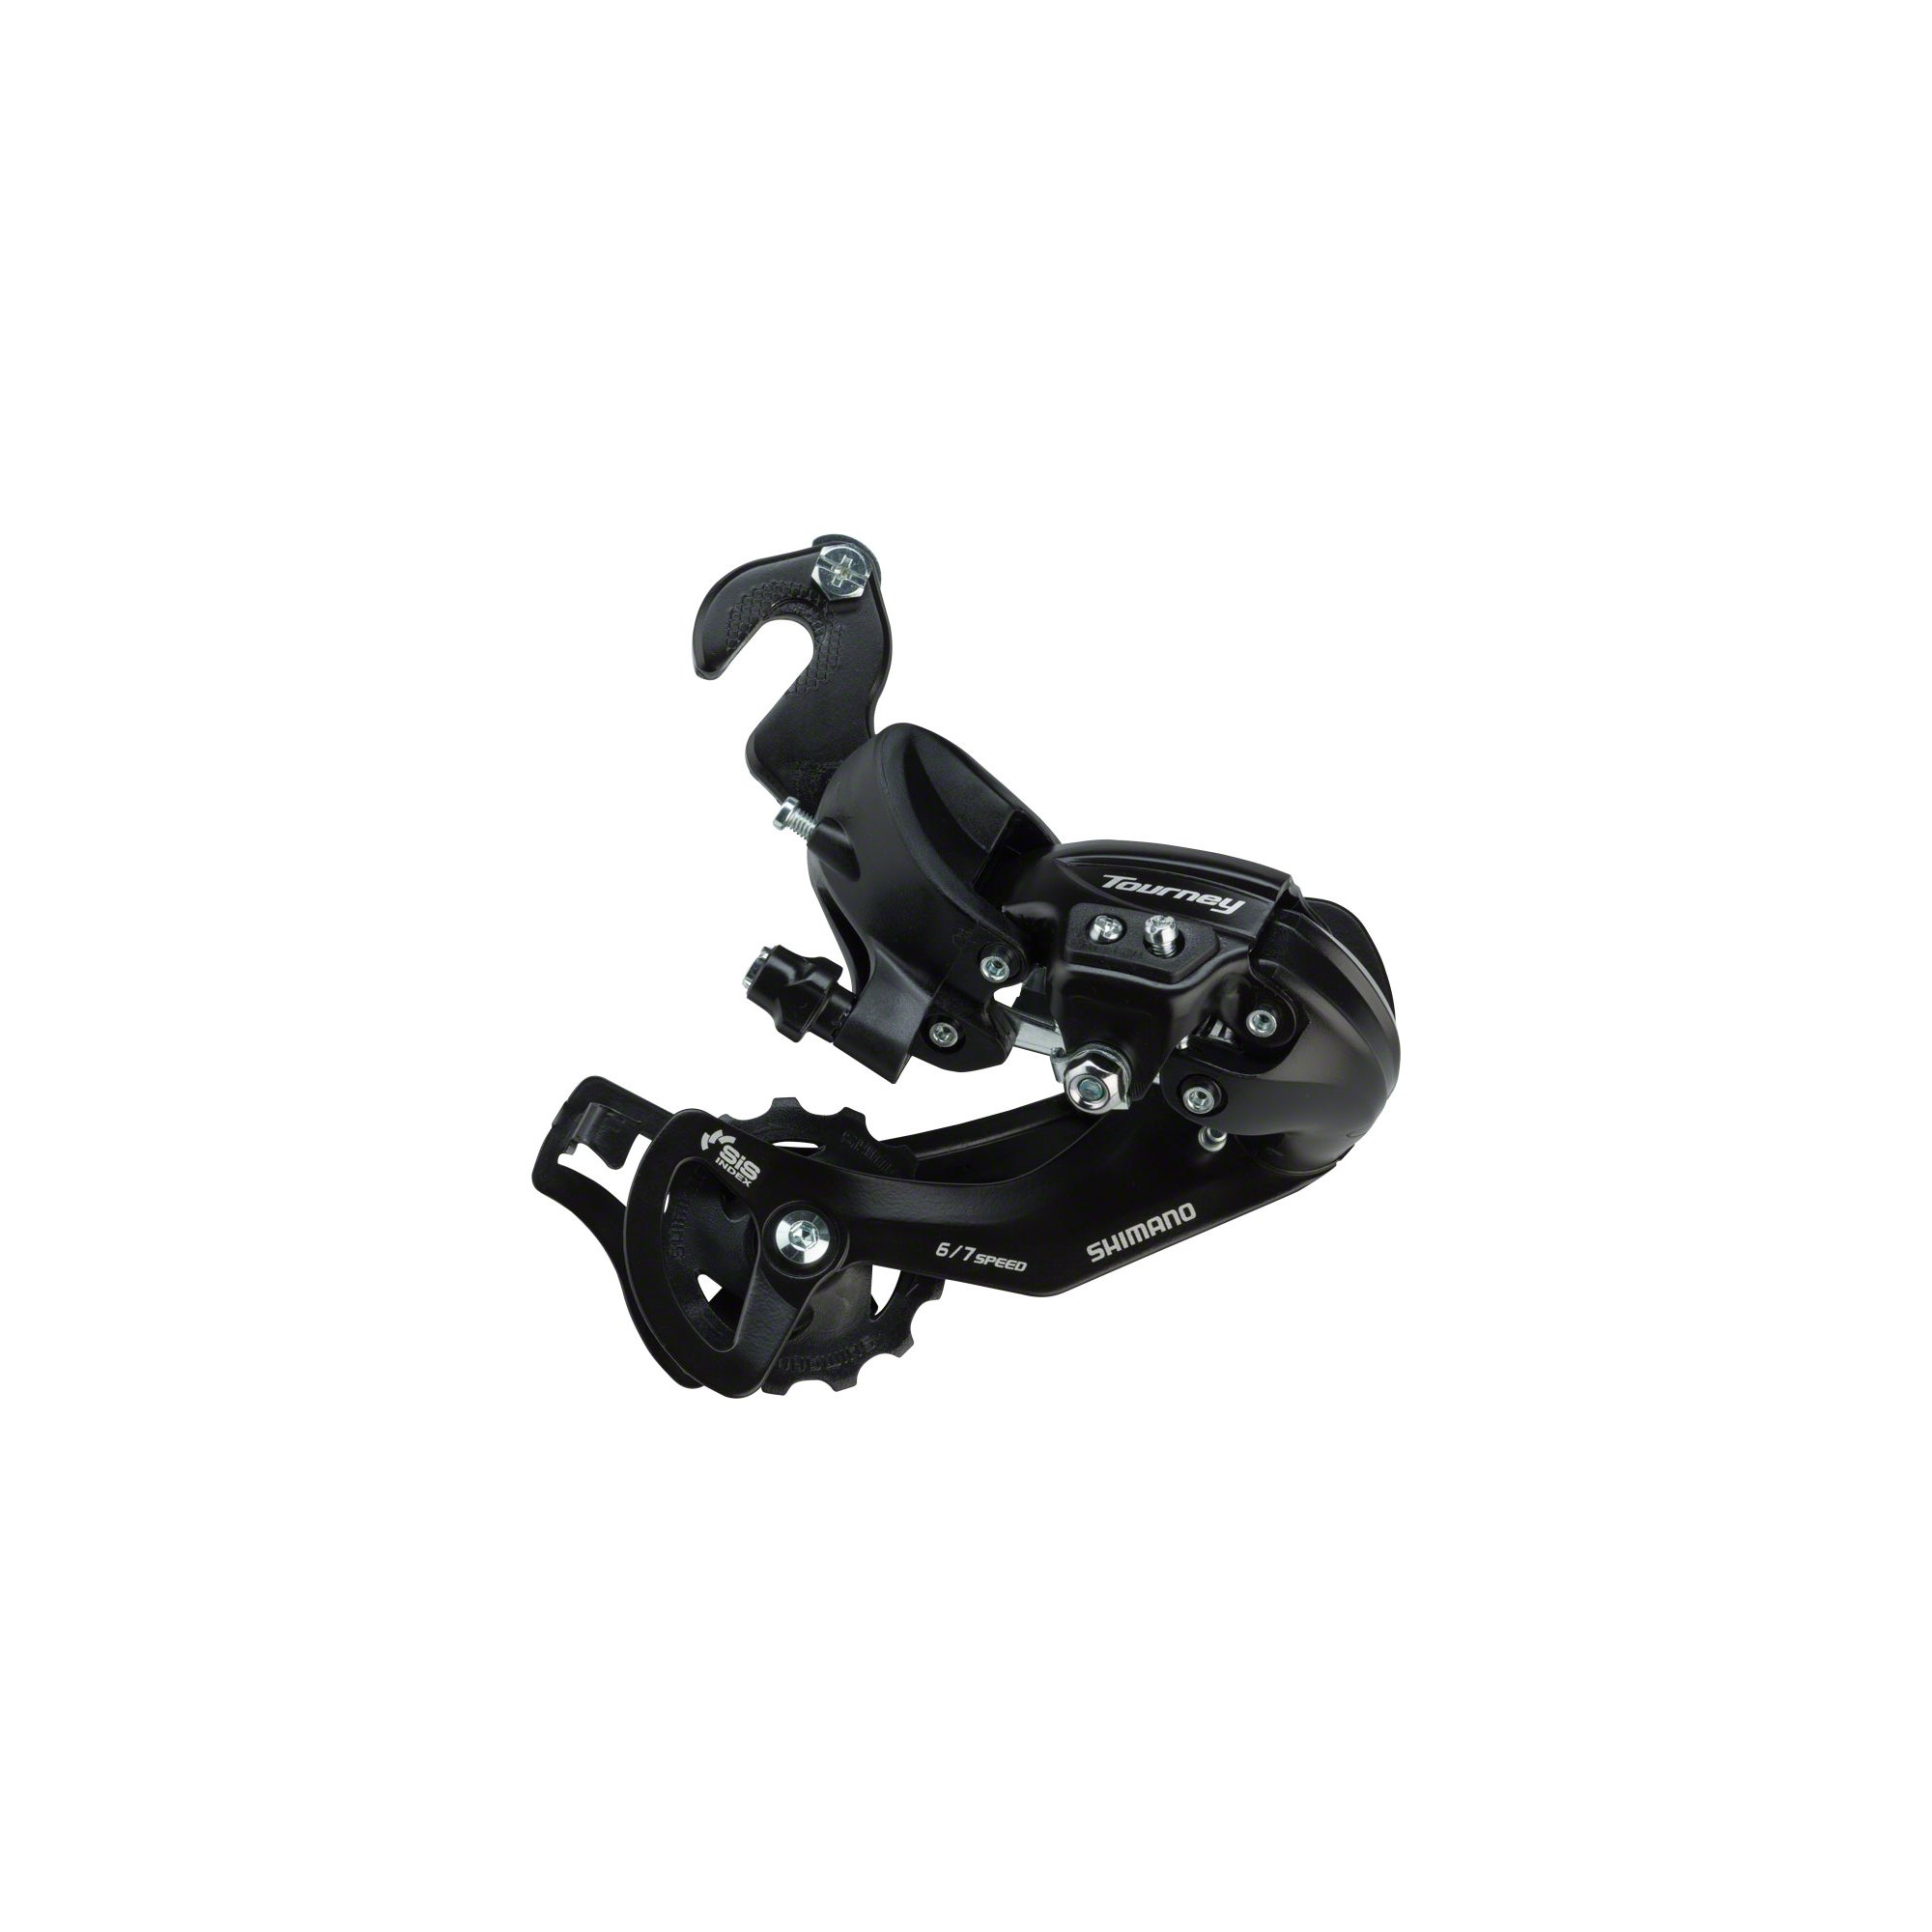 Shimano Tourney SGS 6/7-Speed Mountain Bicycle Rear Derailleur - RD-TY300-SGS ( 6/7-SPEED, W/RIVETED ADAPTER(BMX-TRACK)) by SHIMANO